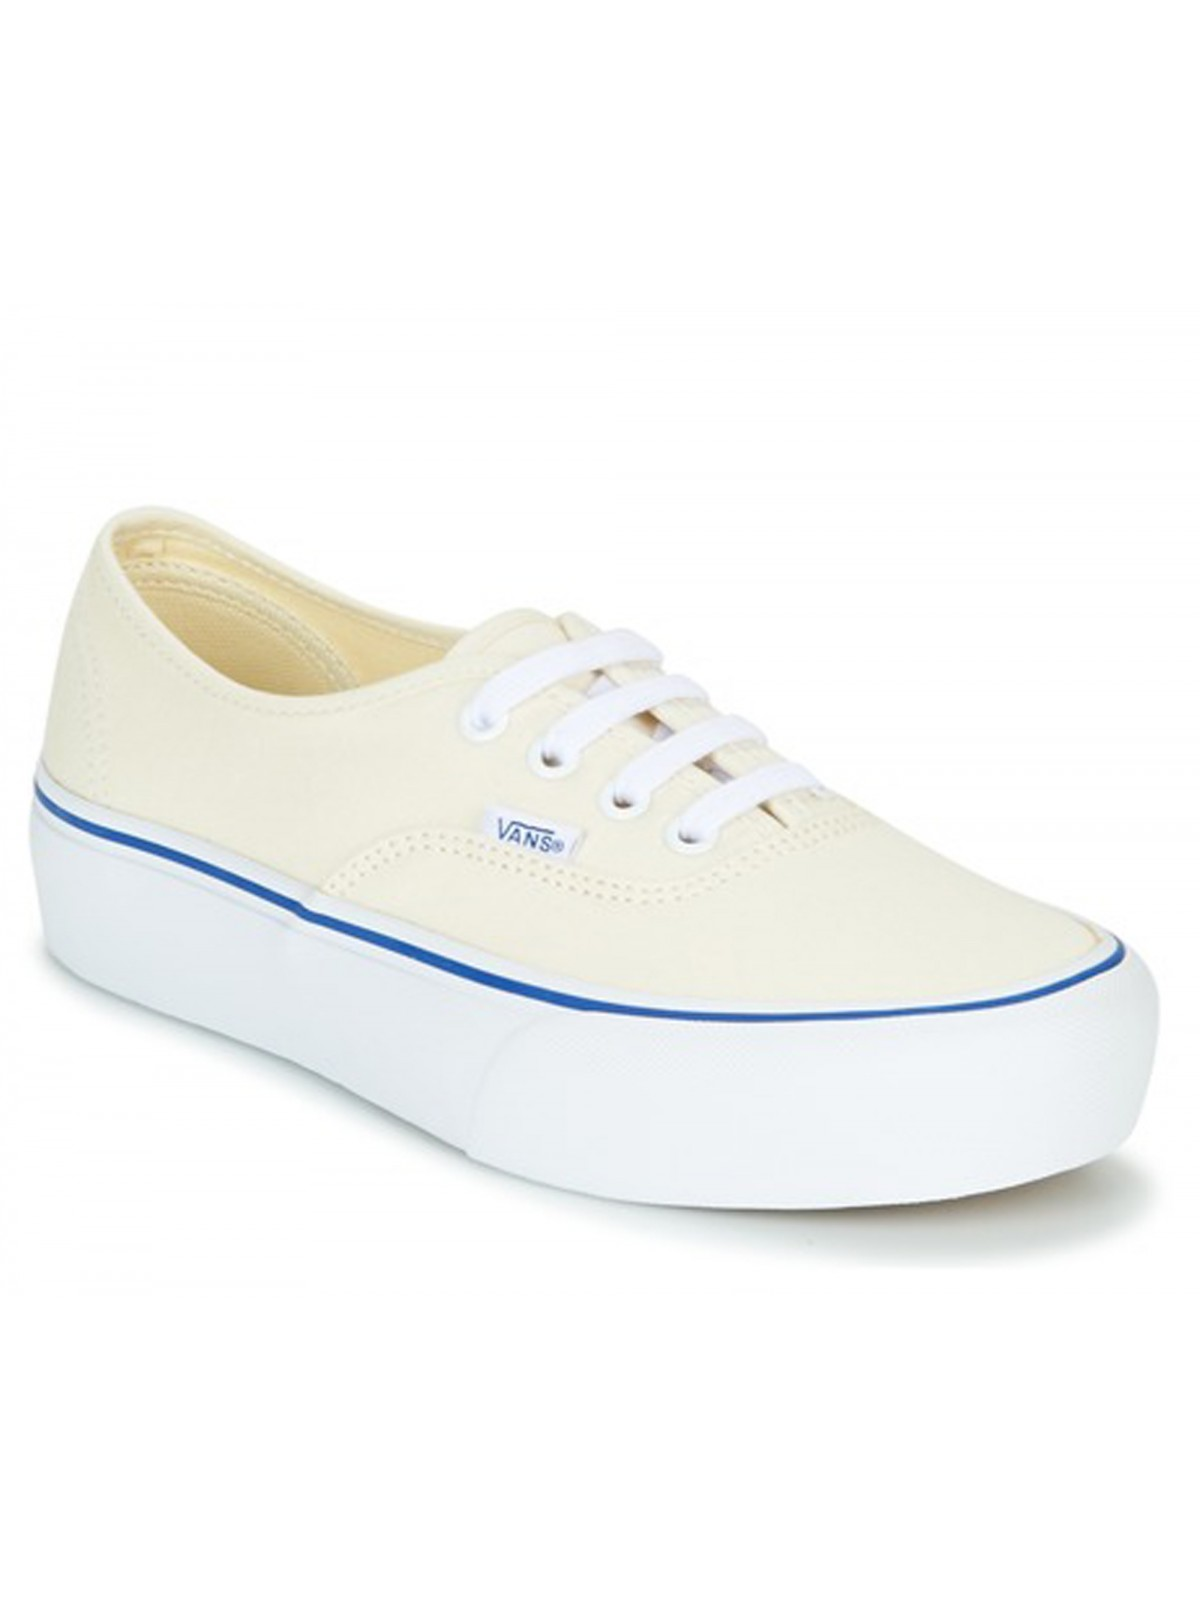 Vans Authentic Plateforme écru